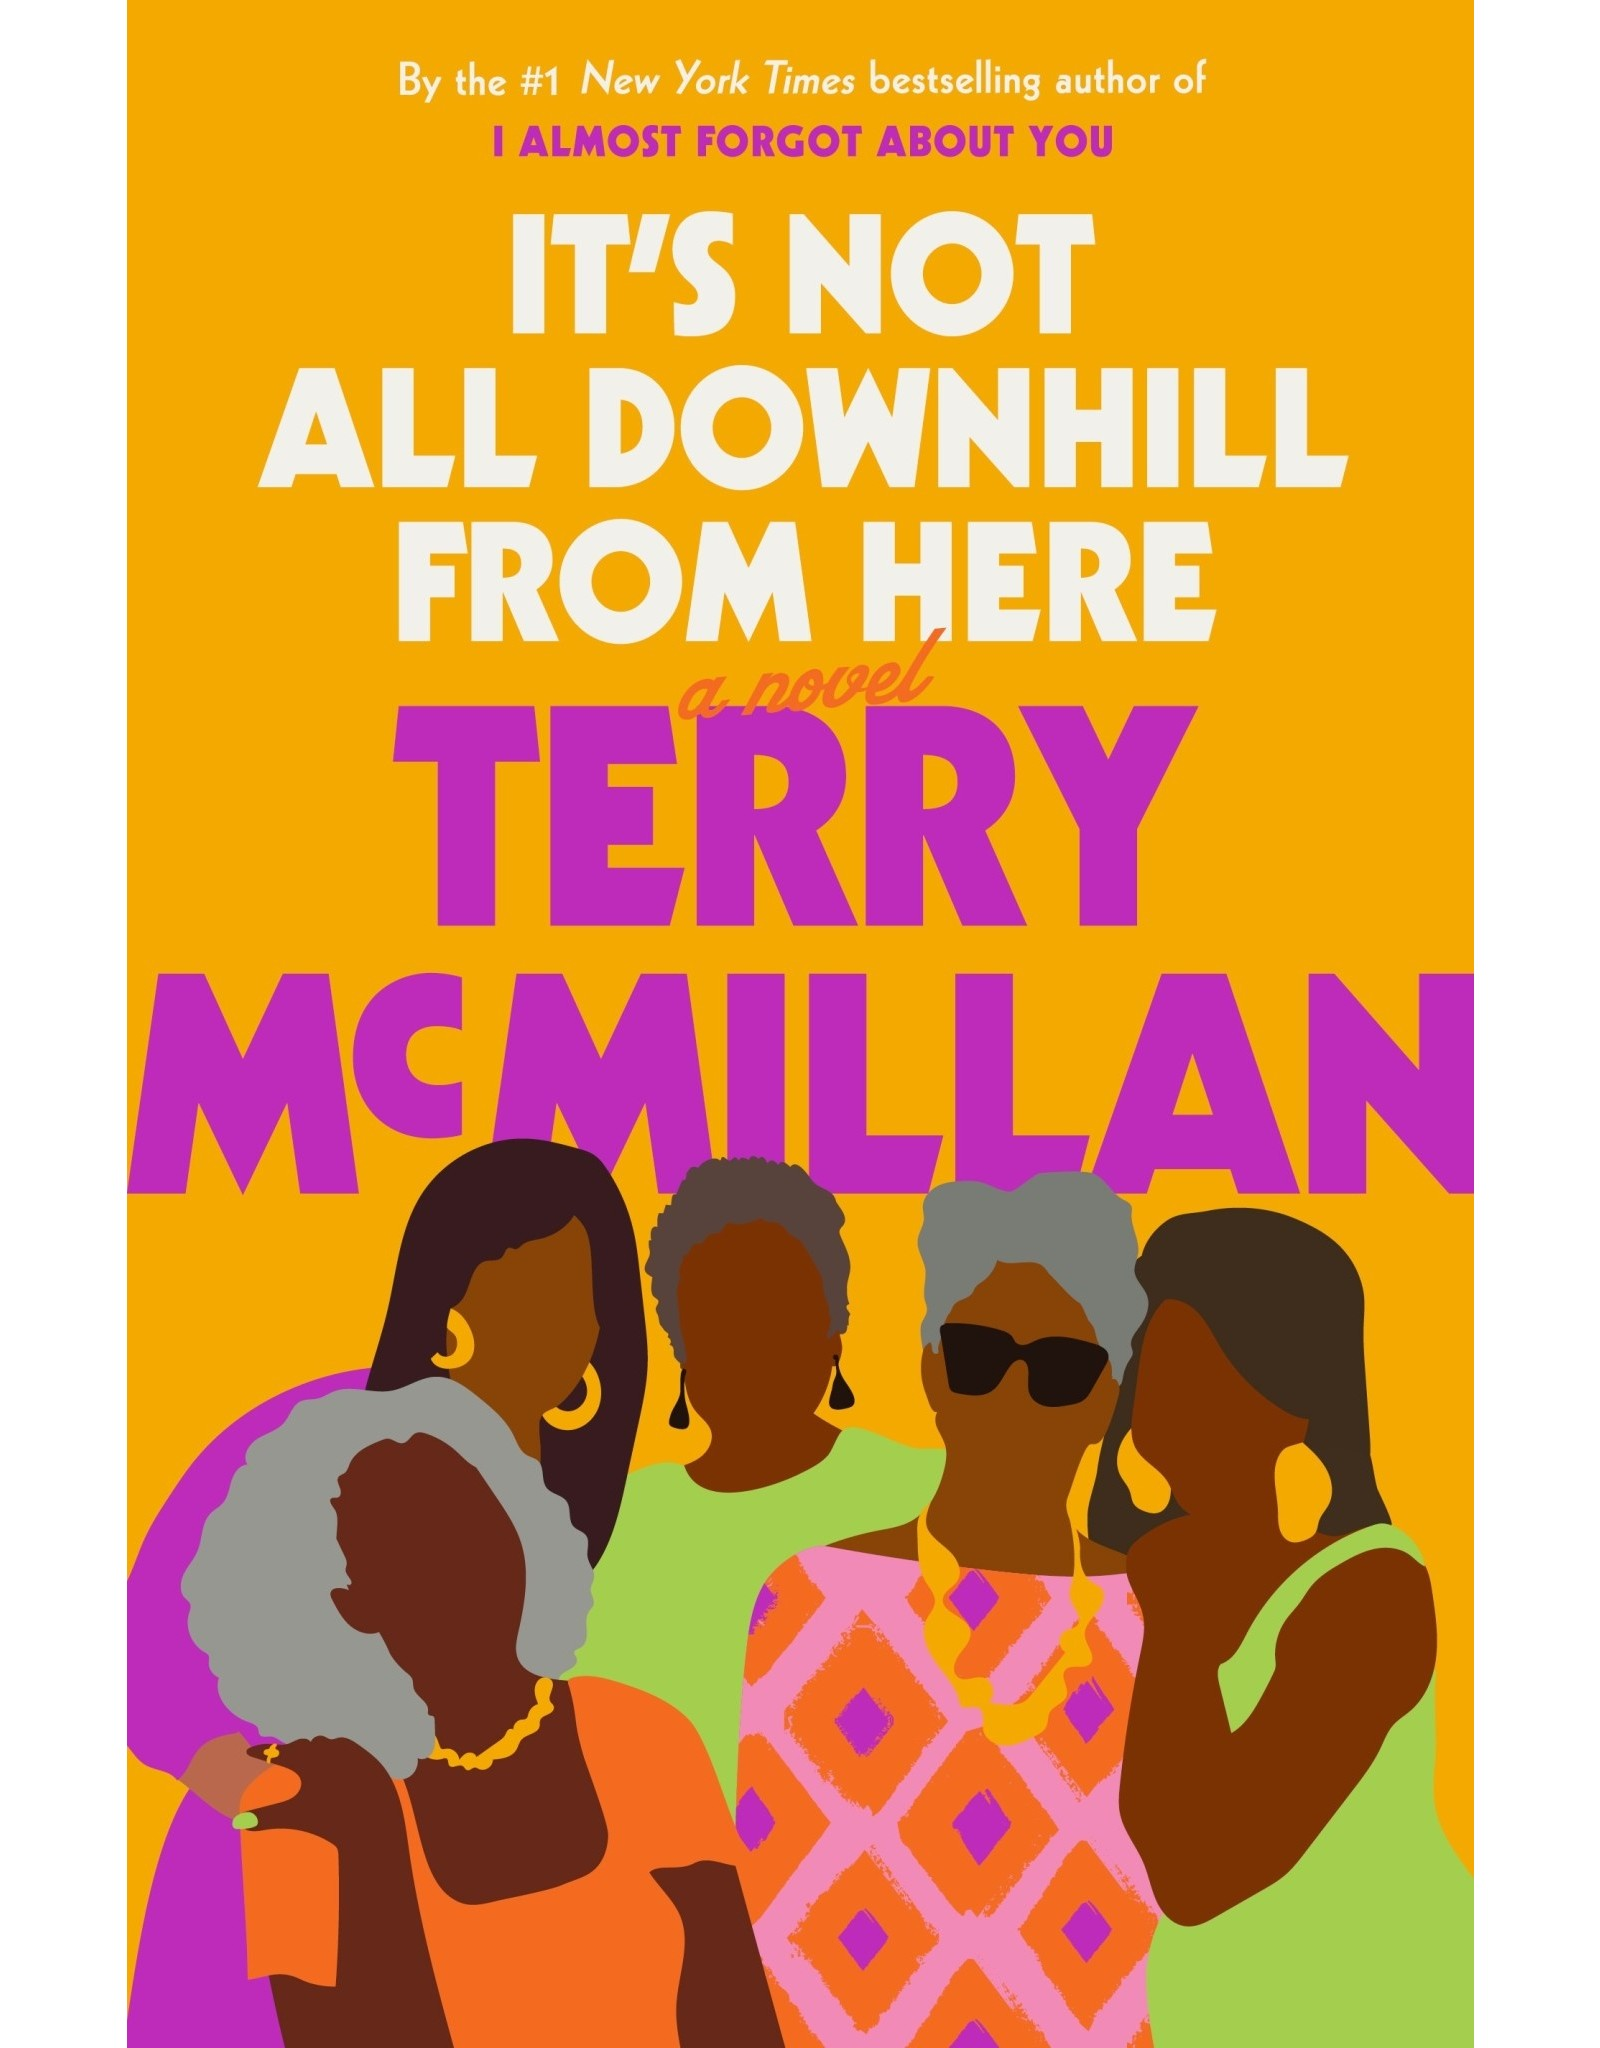 Books It's Not All Downhill From Here by Terry McMillan